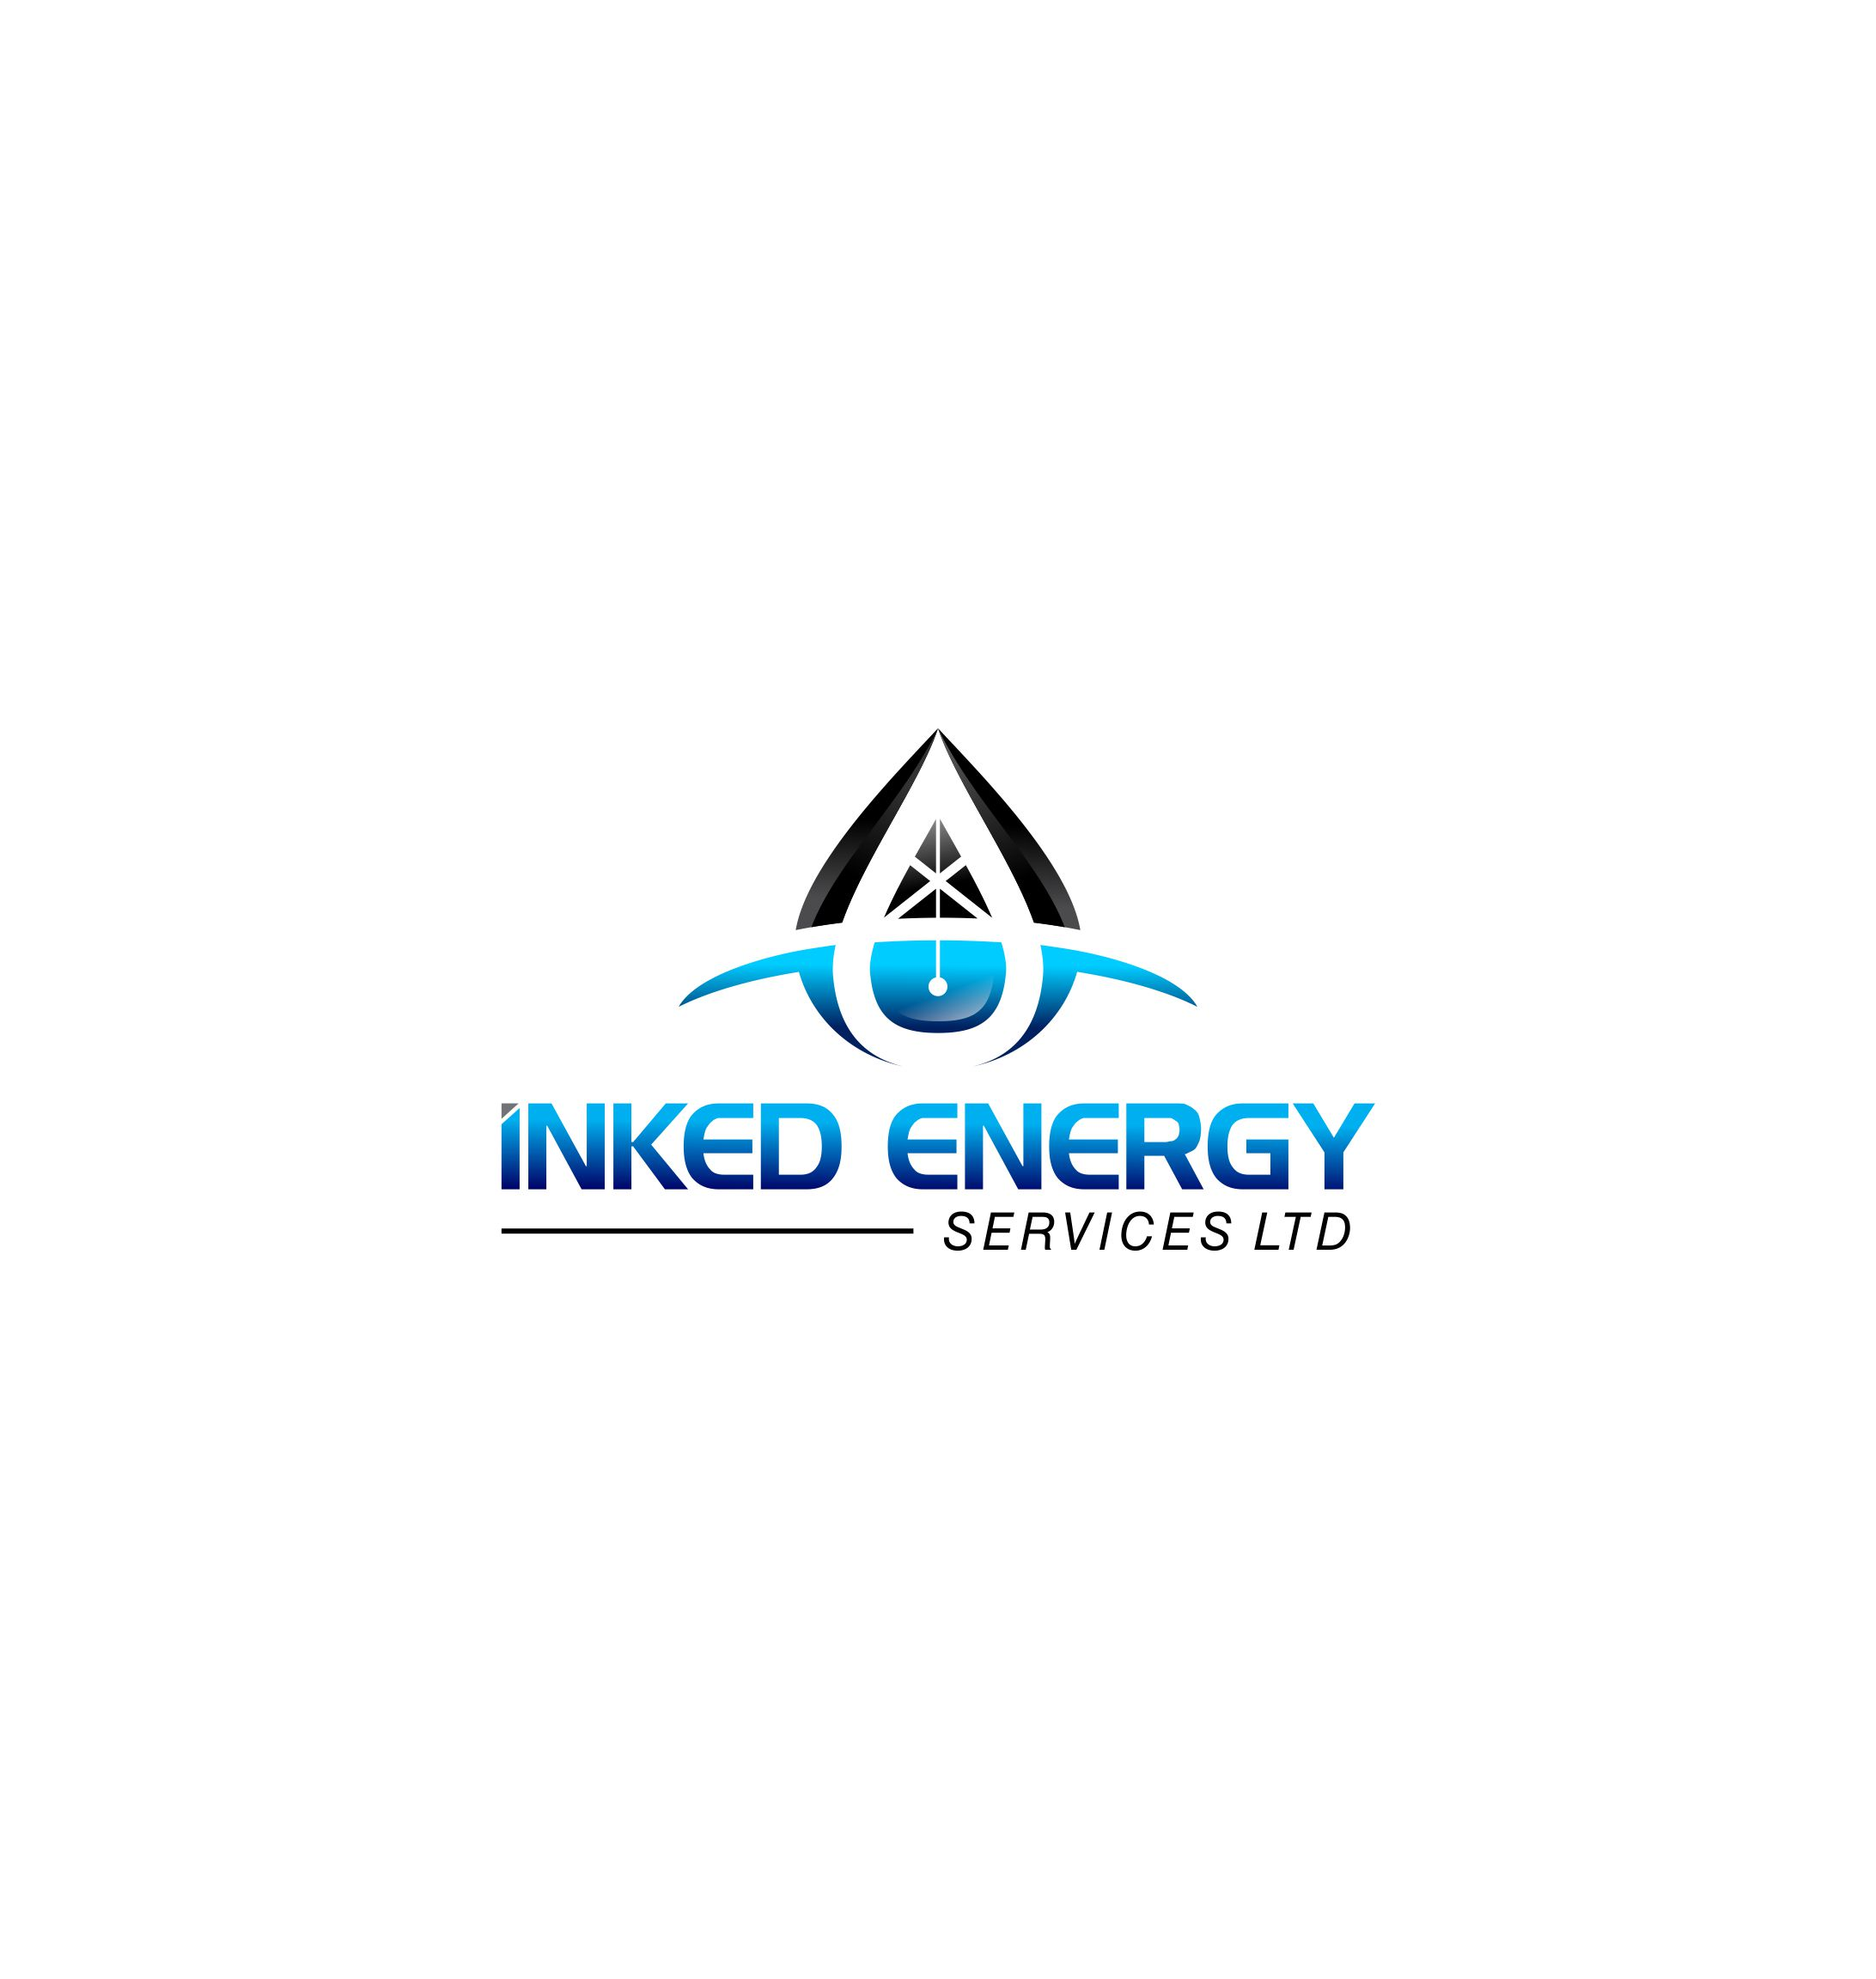 Logo Design by Raymond Garcia - Entry No. 142 in the Logo Design Contest Creative Logo Design for INKED ENERGY SERVICES LTD.